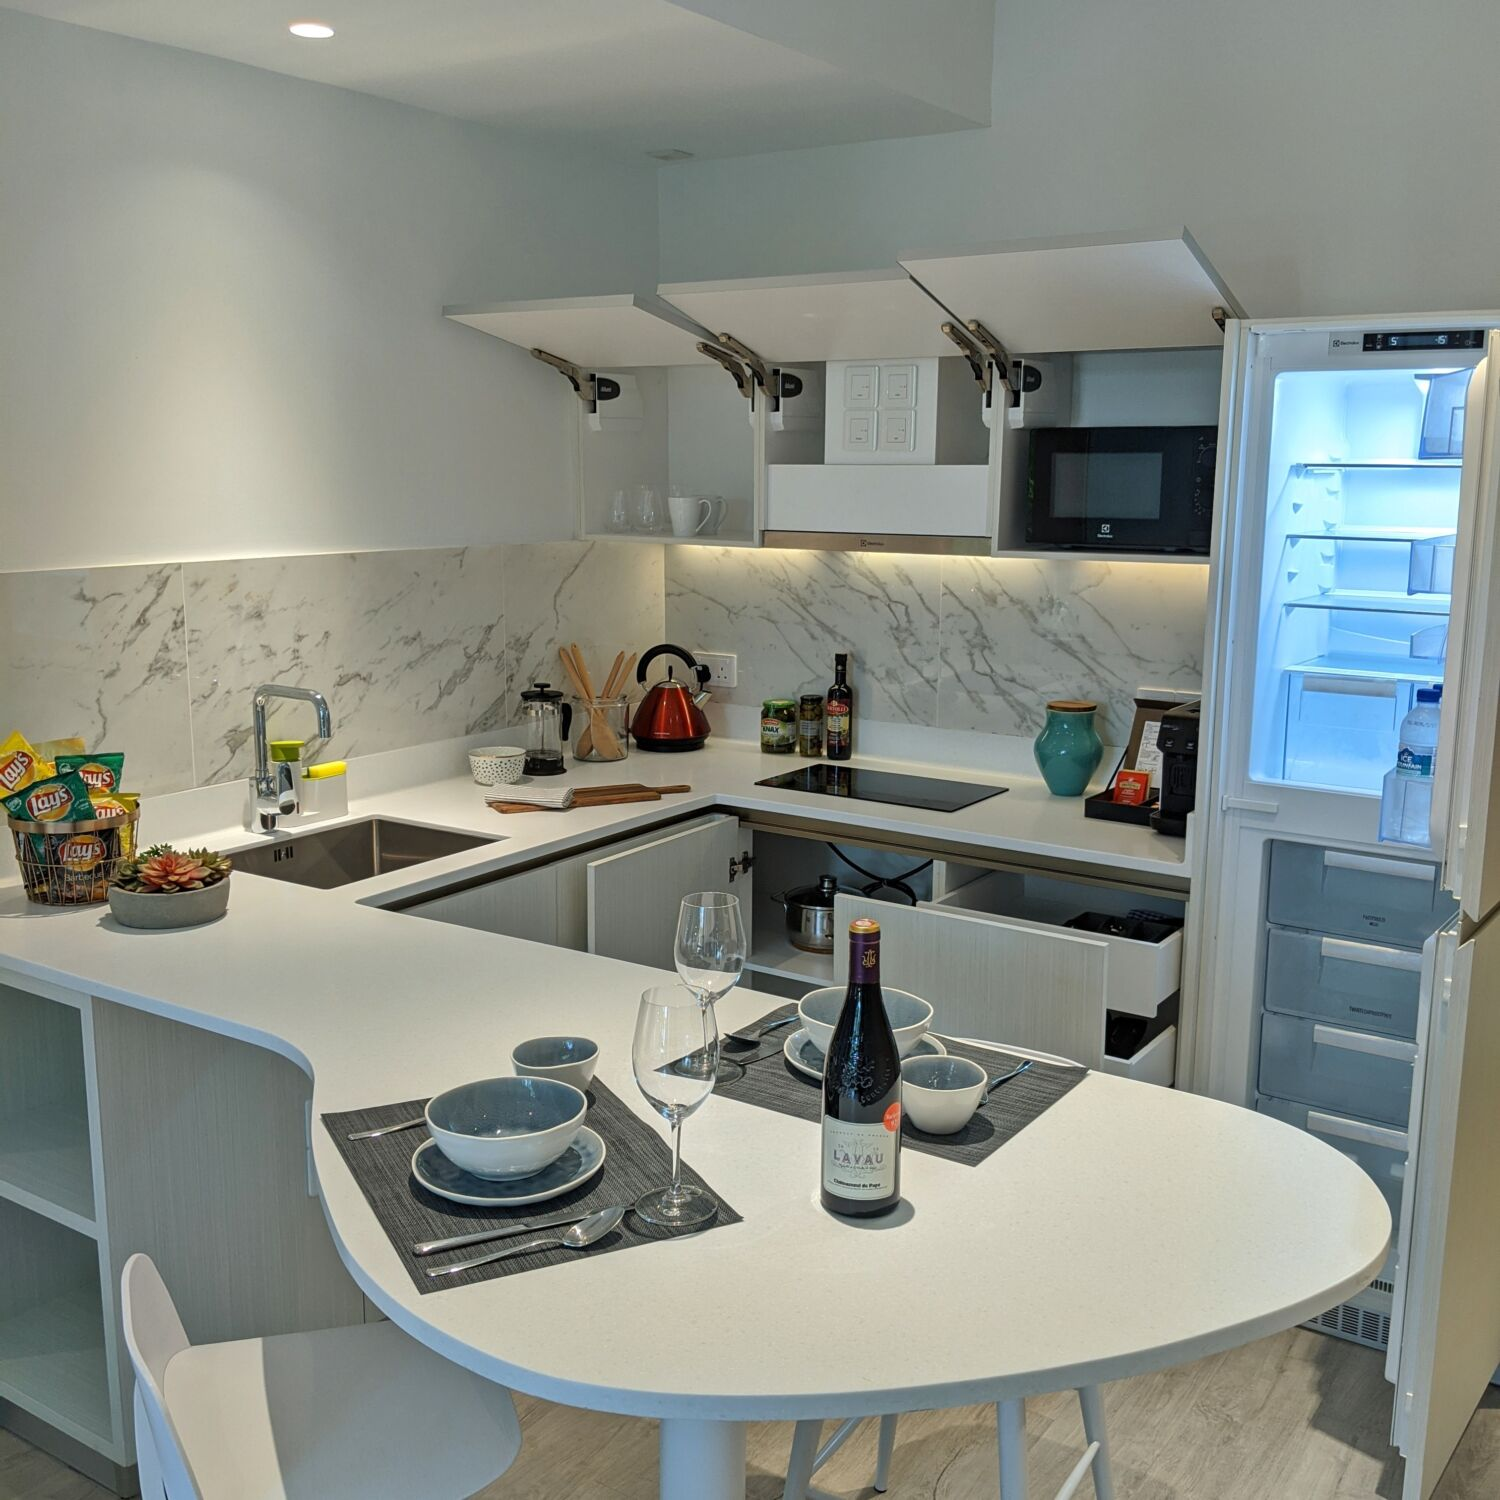 Winsland Serviced Suites by Lanson Place One-Bedroom Executive Suite Kitchen